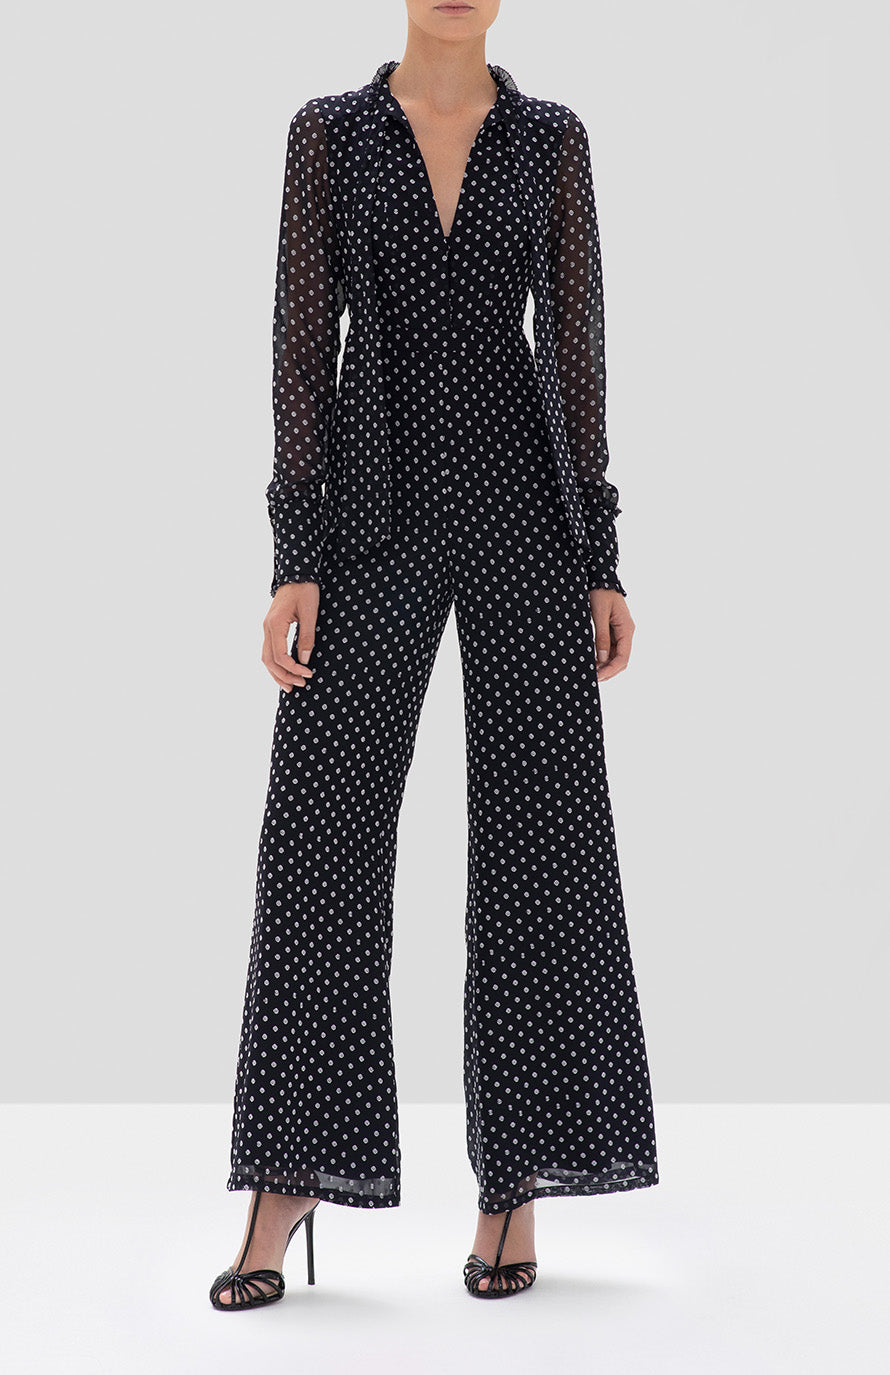 Alexis Davinia Jumpsuit in Black Embroidered Dot from the Fall Winter 2019 Ready To Wear Collection - Rear View